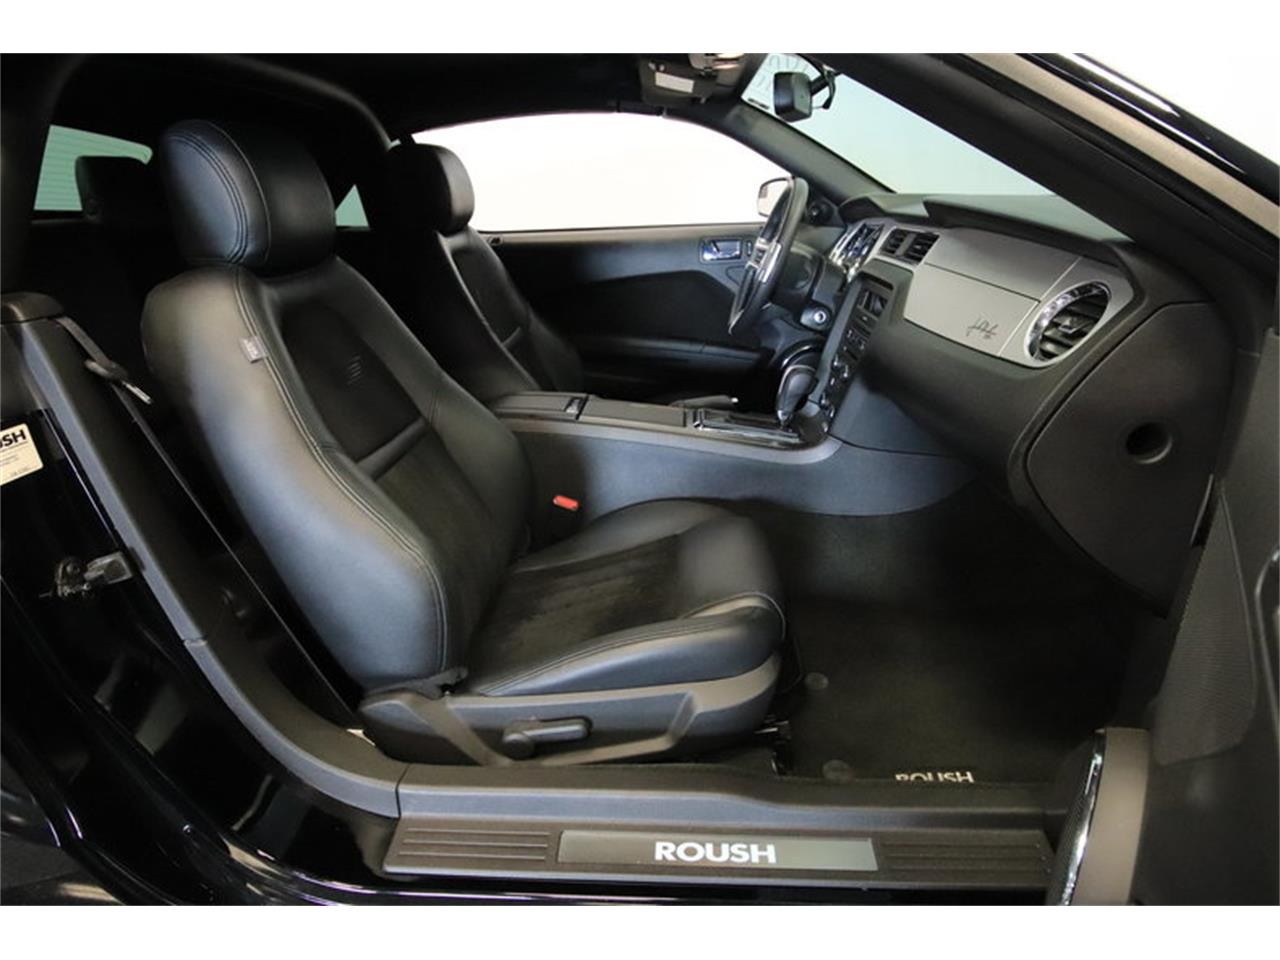 Large Picture of '14 Mustang (Roush) - MH8D